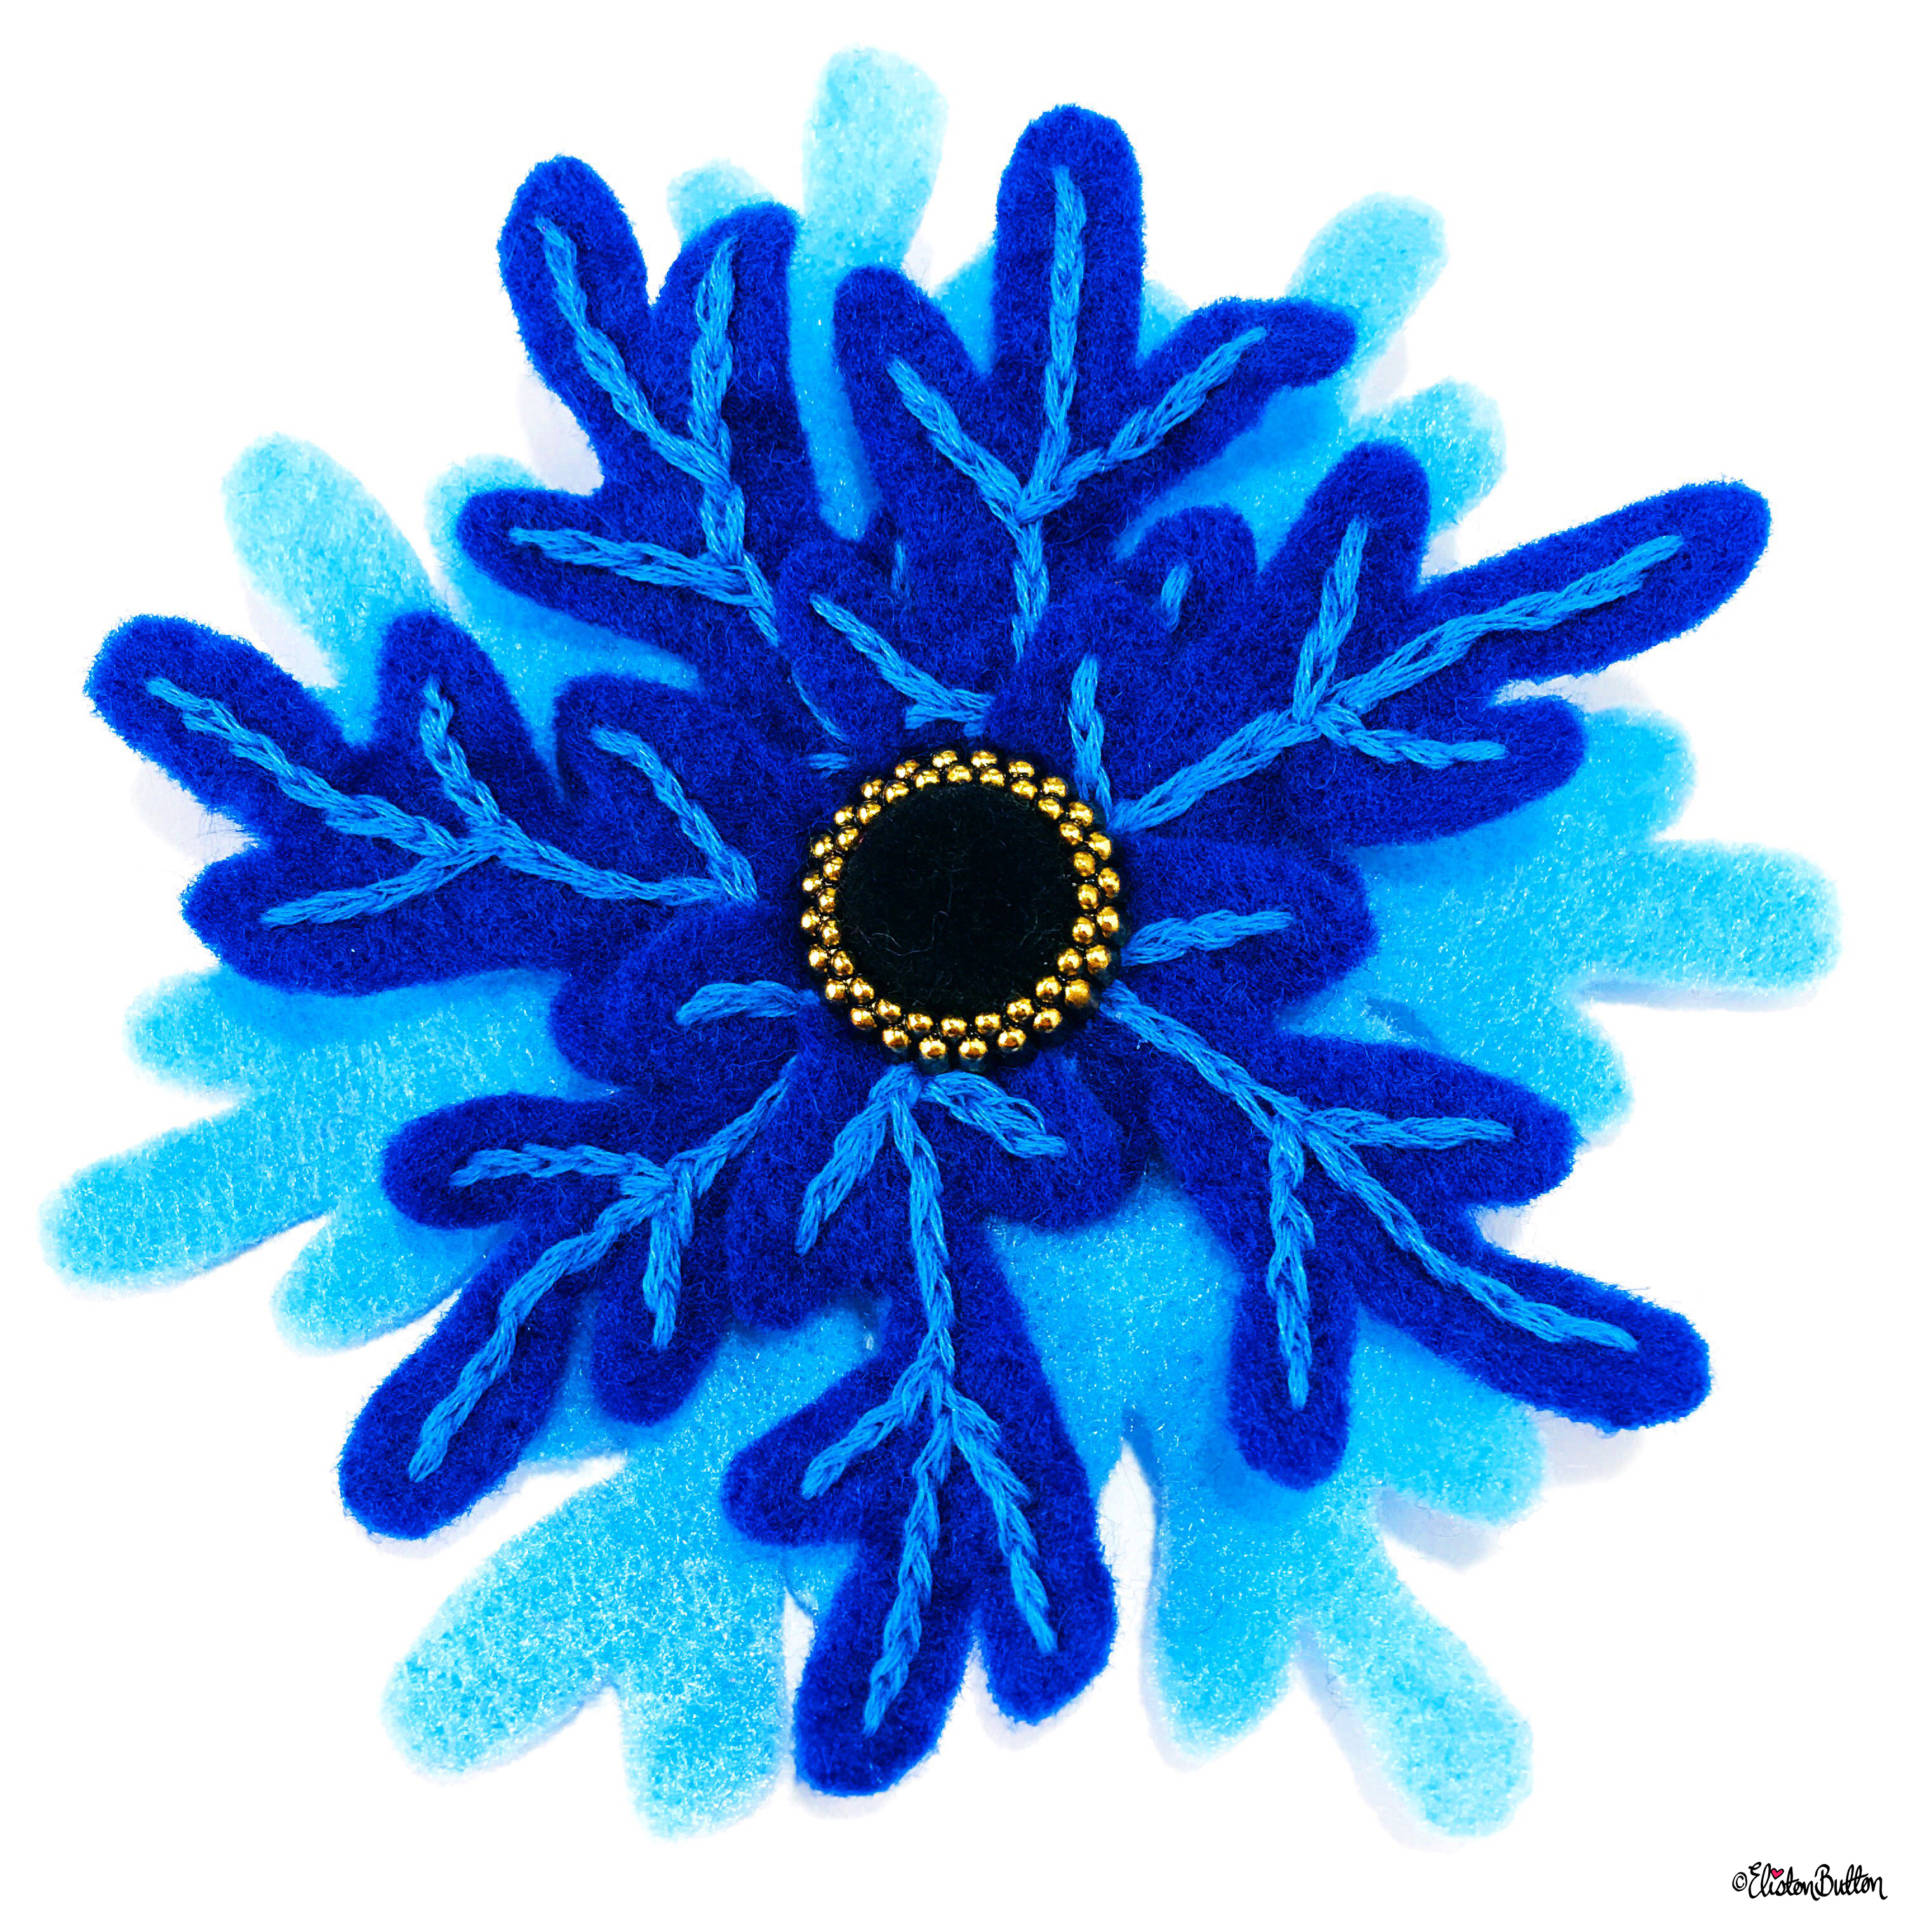 Embroidered Felt Frozen Snowflake Brooch by Eliston Button on Etsy - For the Love of…Christmas at www.elistonbutton.com - Eliston Button - That Crafty Kid – Art, Design, Craft & Adventure.